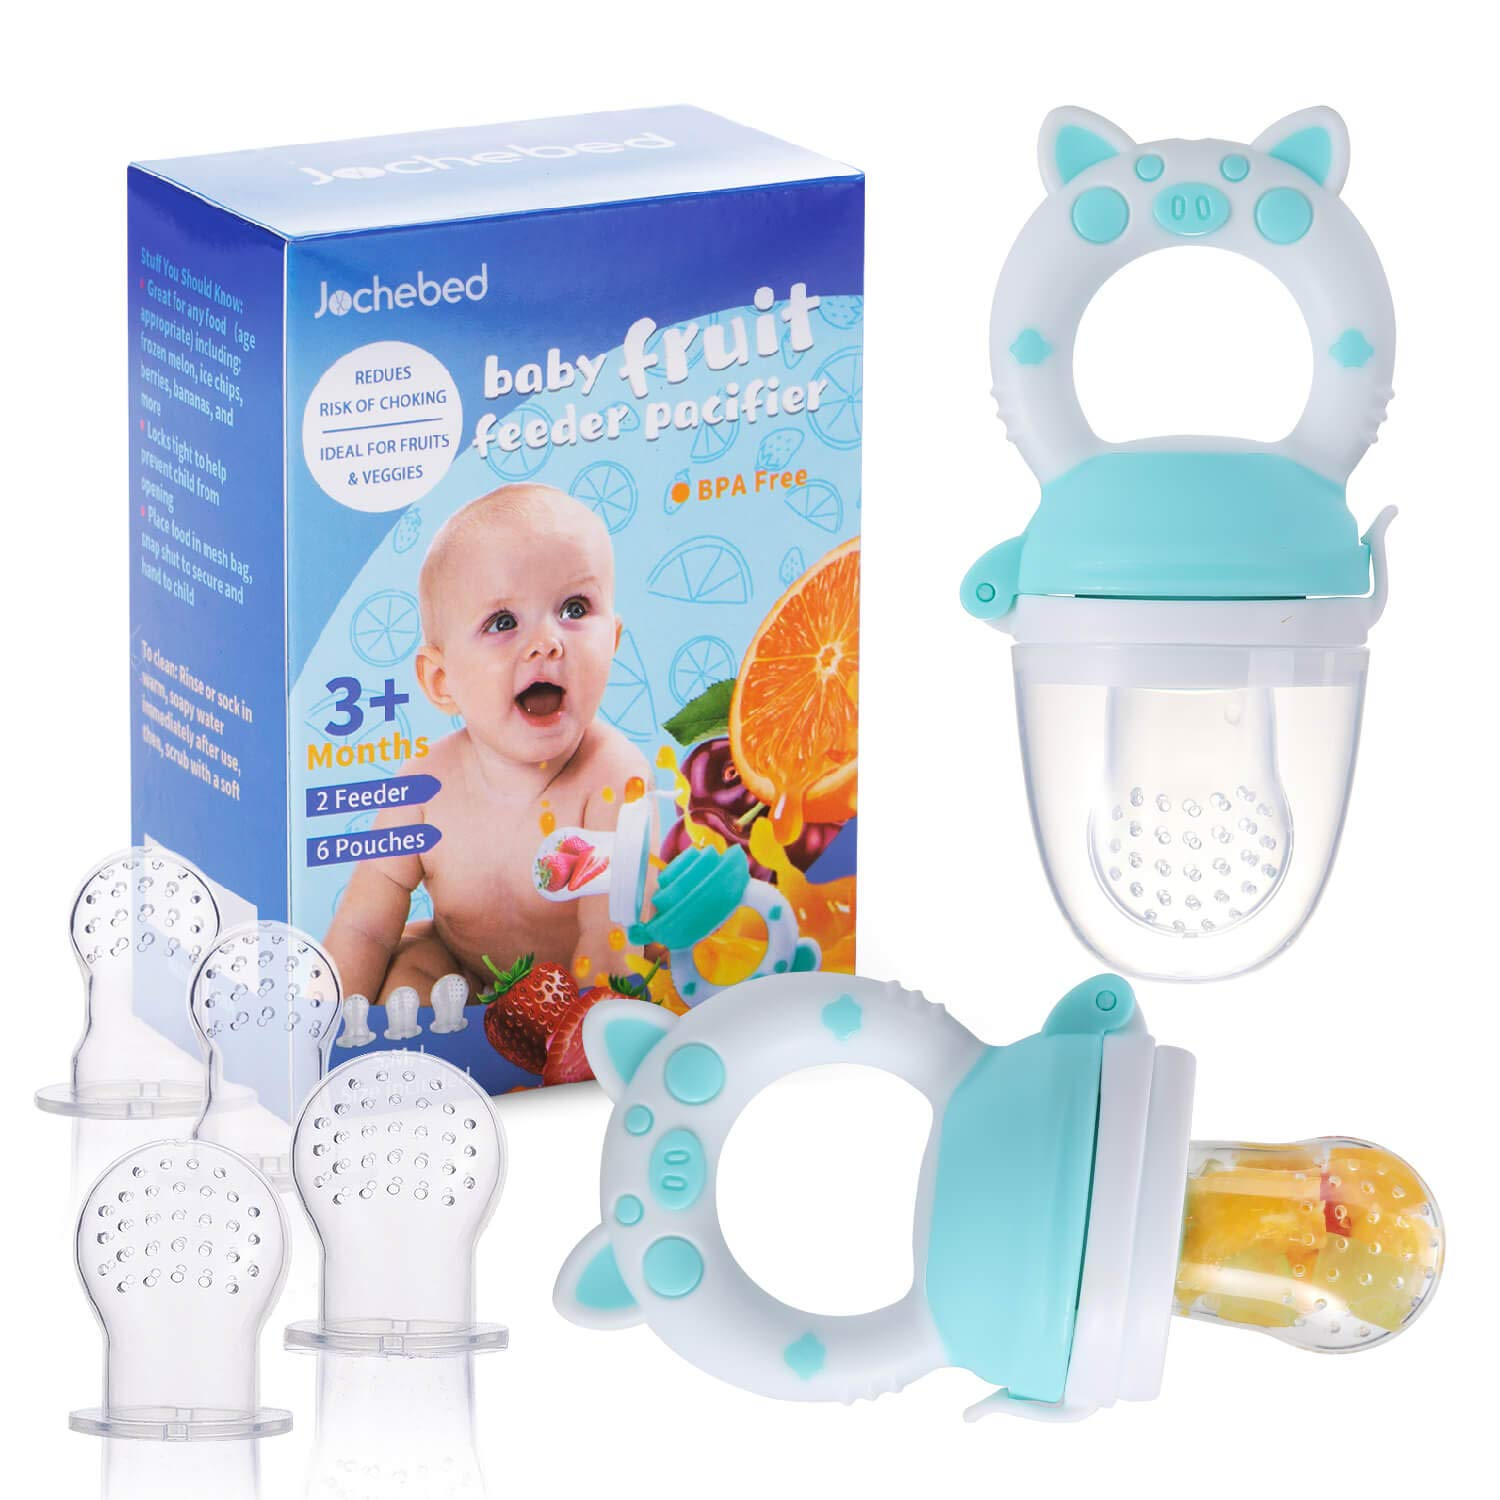 Baby Fruit Food Feeder Pacifier - Fresh Teething Pacifiers, Infant Fruit Teething Teether Toy for 3-24 Months, 6 Pcs Silicone Pouches for Toddlers & Kids & Babies, Piggy Handle 2-Pack (Blue)